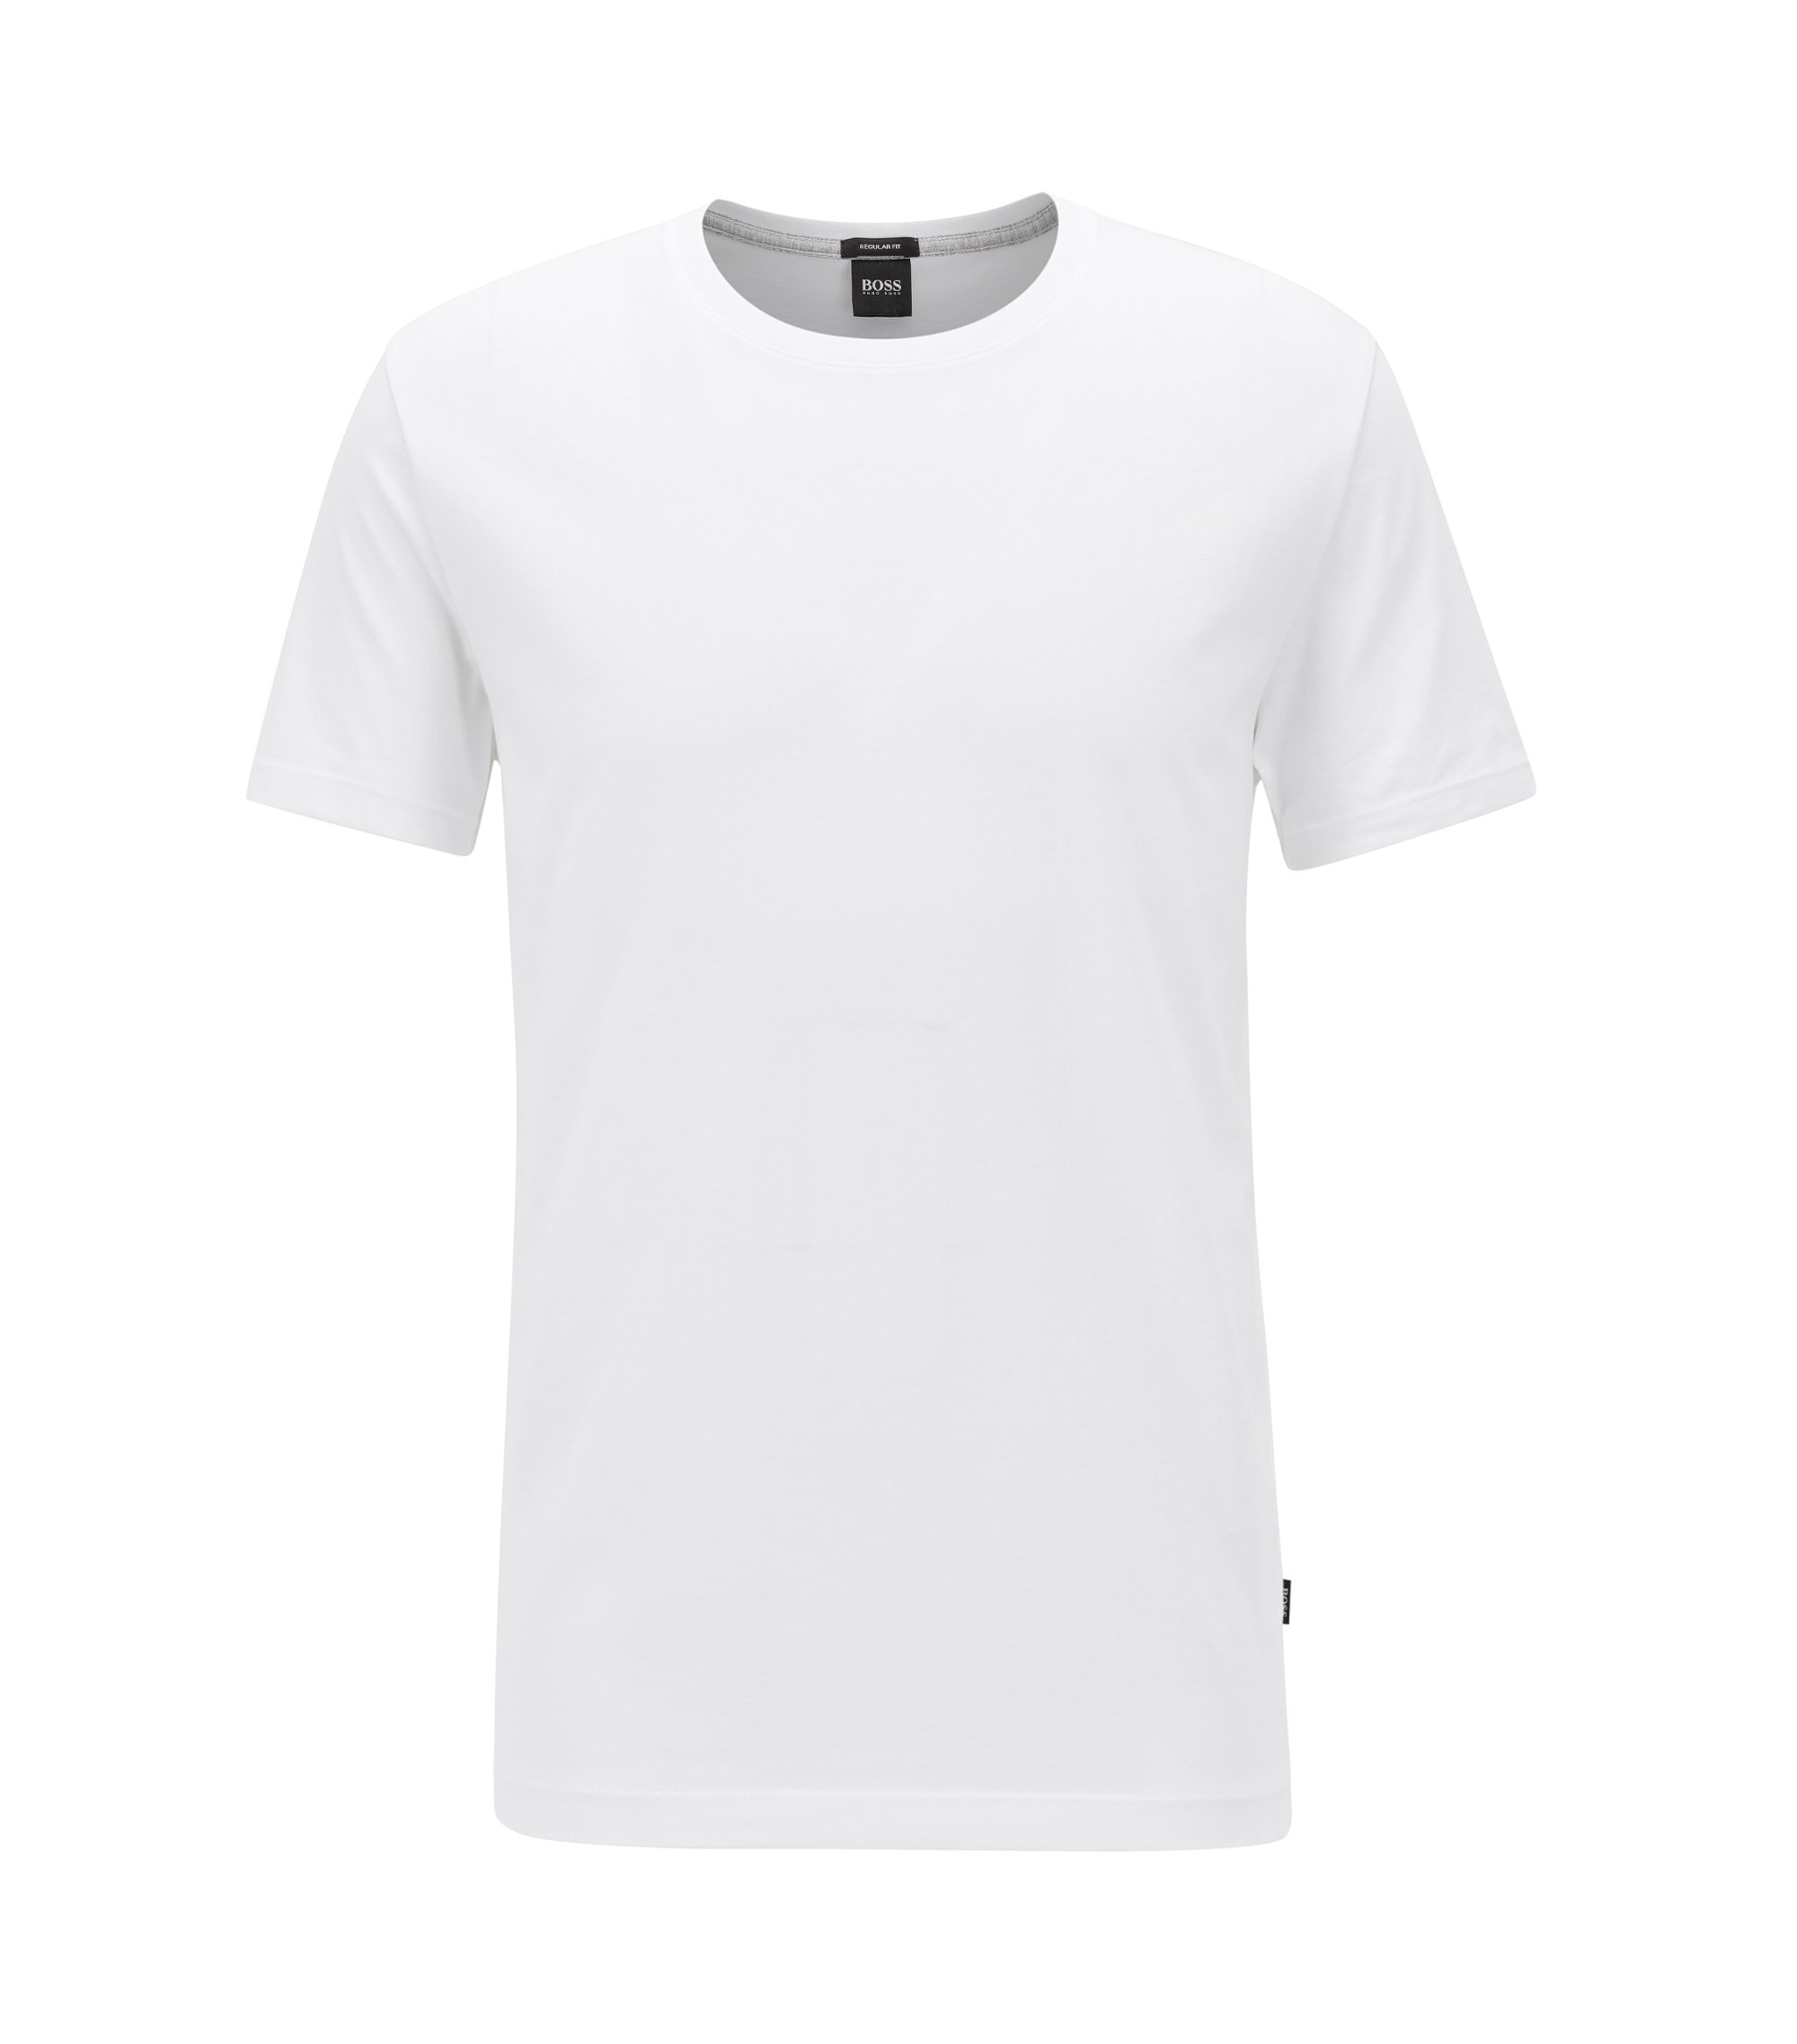 Regular-fit T-shirt in soft cotton | 'Tiburt', White